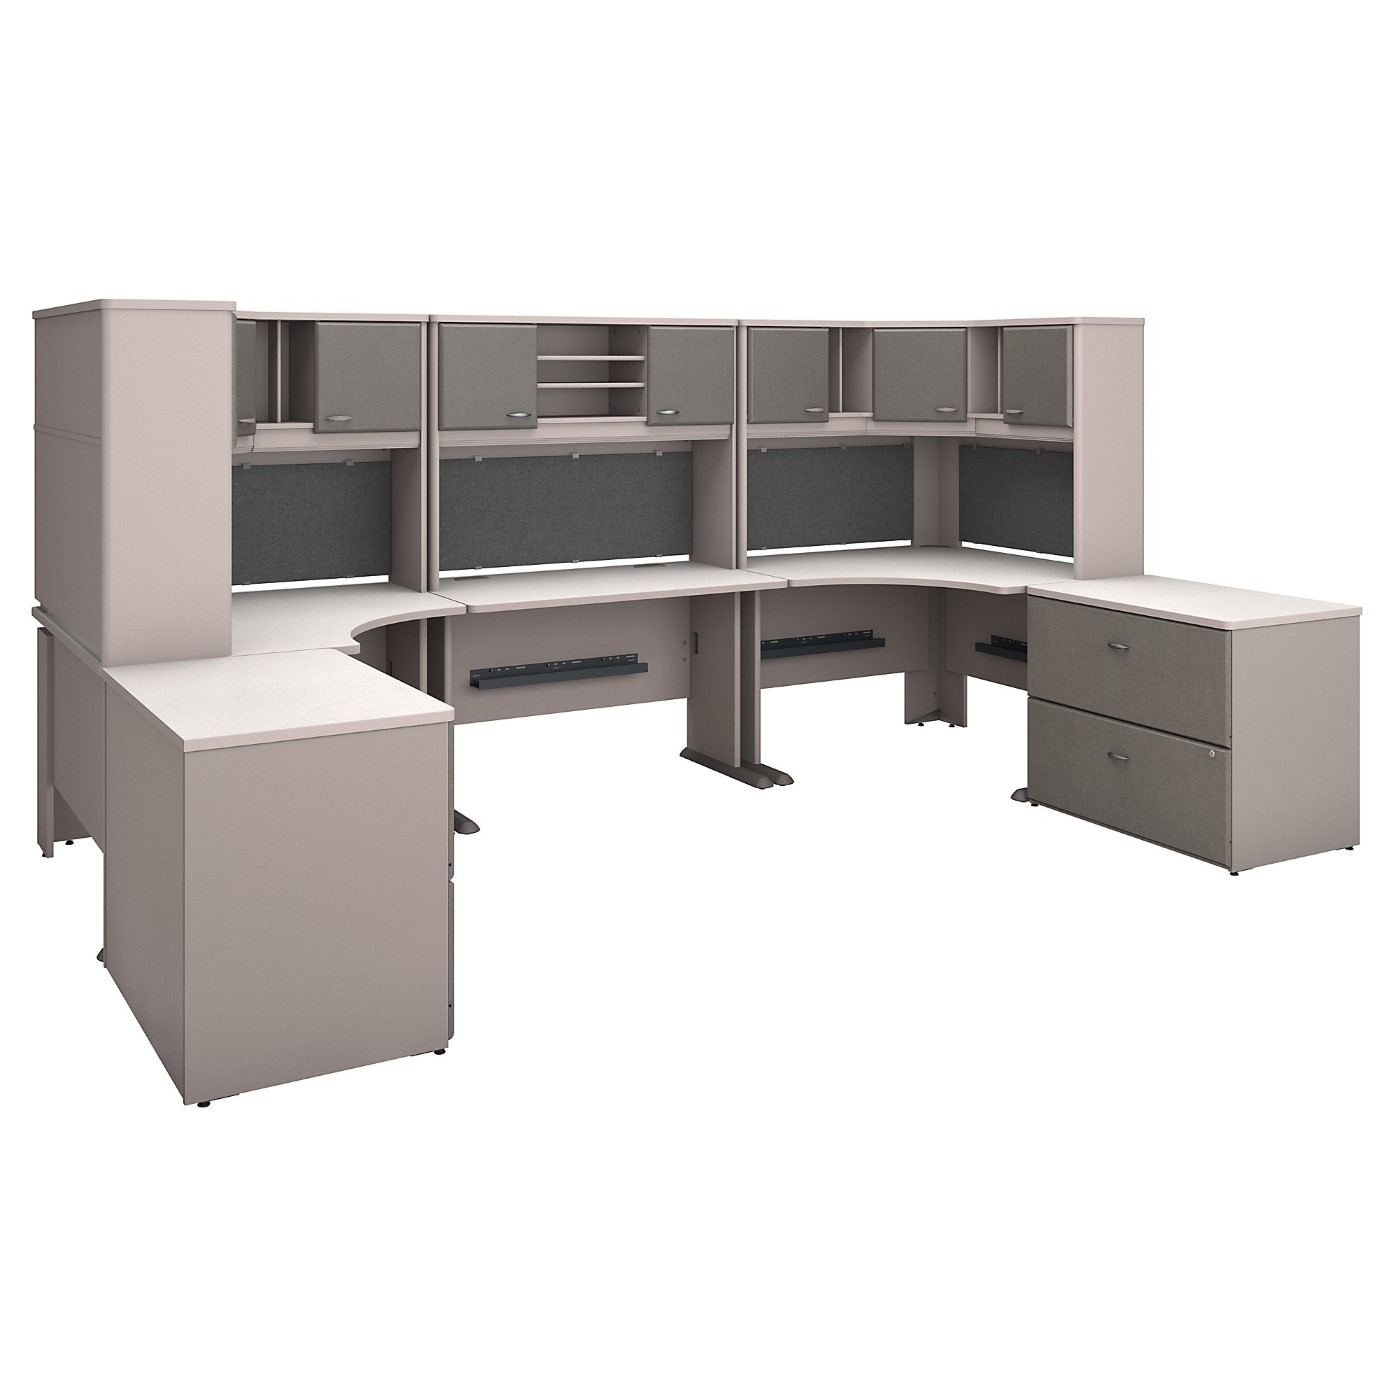 BUSH BUSINESS FURNITURE SERIES A 2 PERSON WORKSTATION WITH CORNER DESKS, HUTCHES AND STORAGE. FREE SHIPPING SALE DEDUCT 10% MORE ENTER '10percent' IN COUPON CODE BOX WHILE CHECKING OUT.